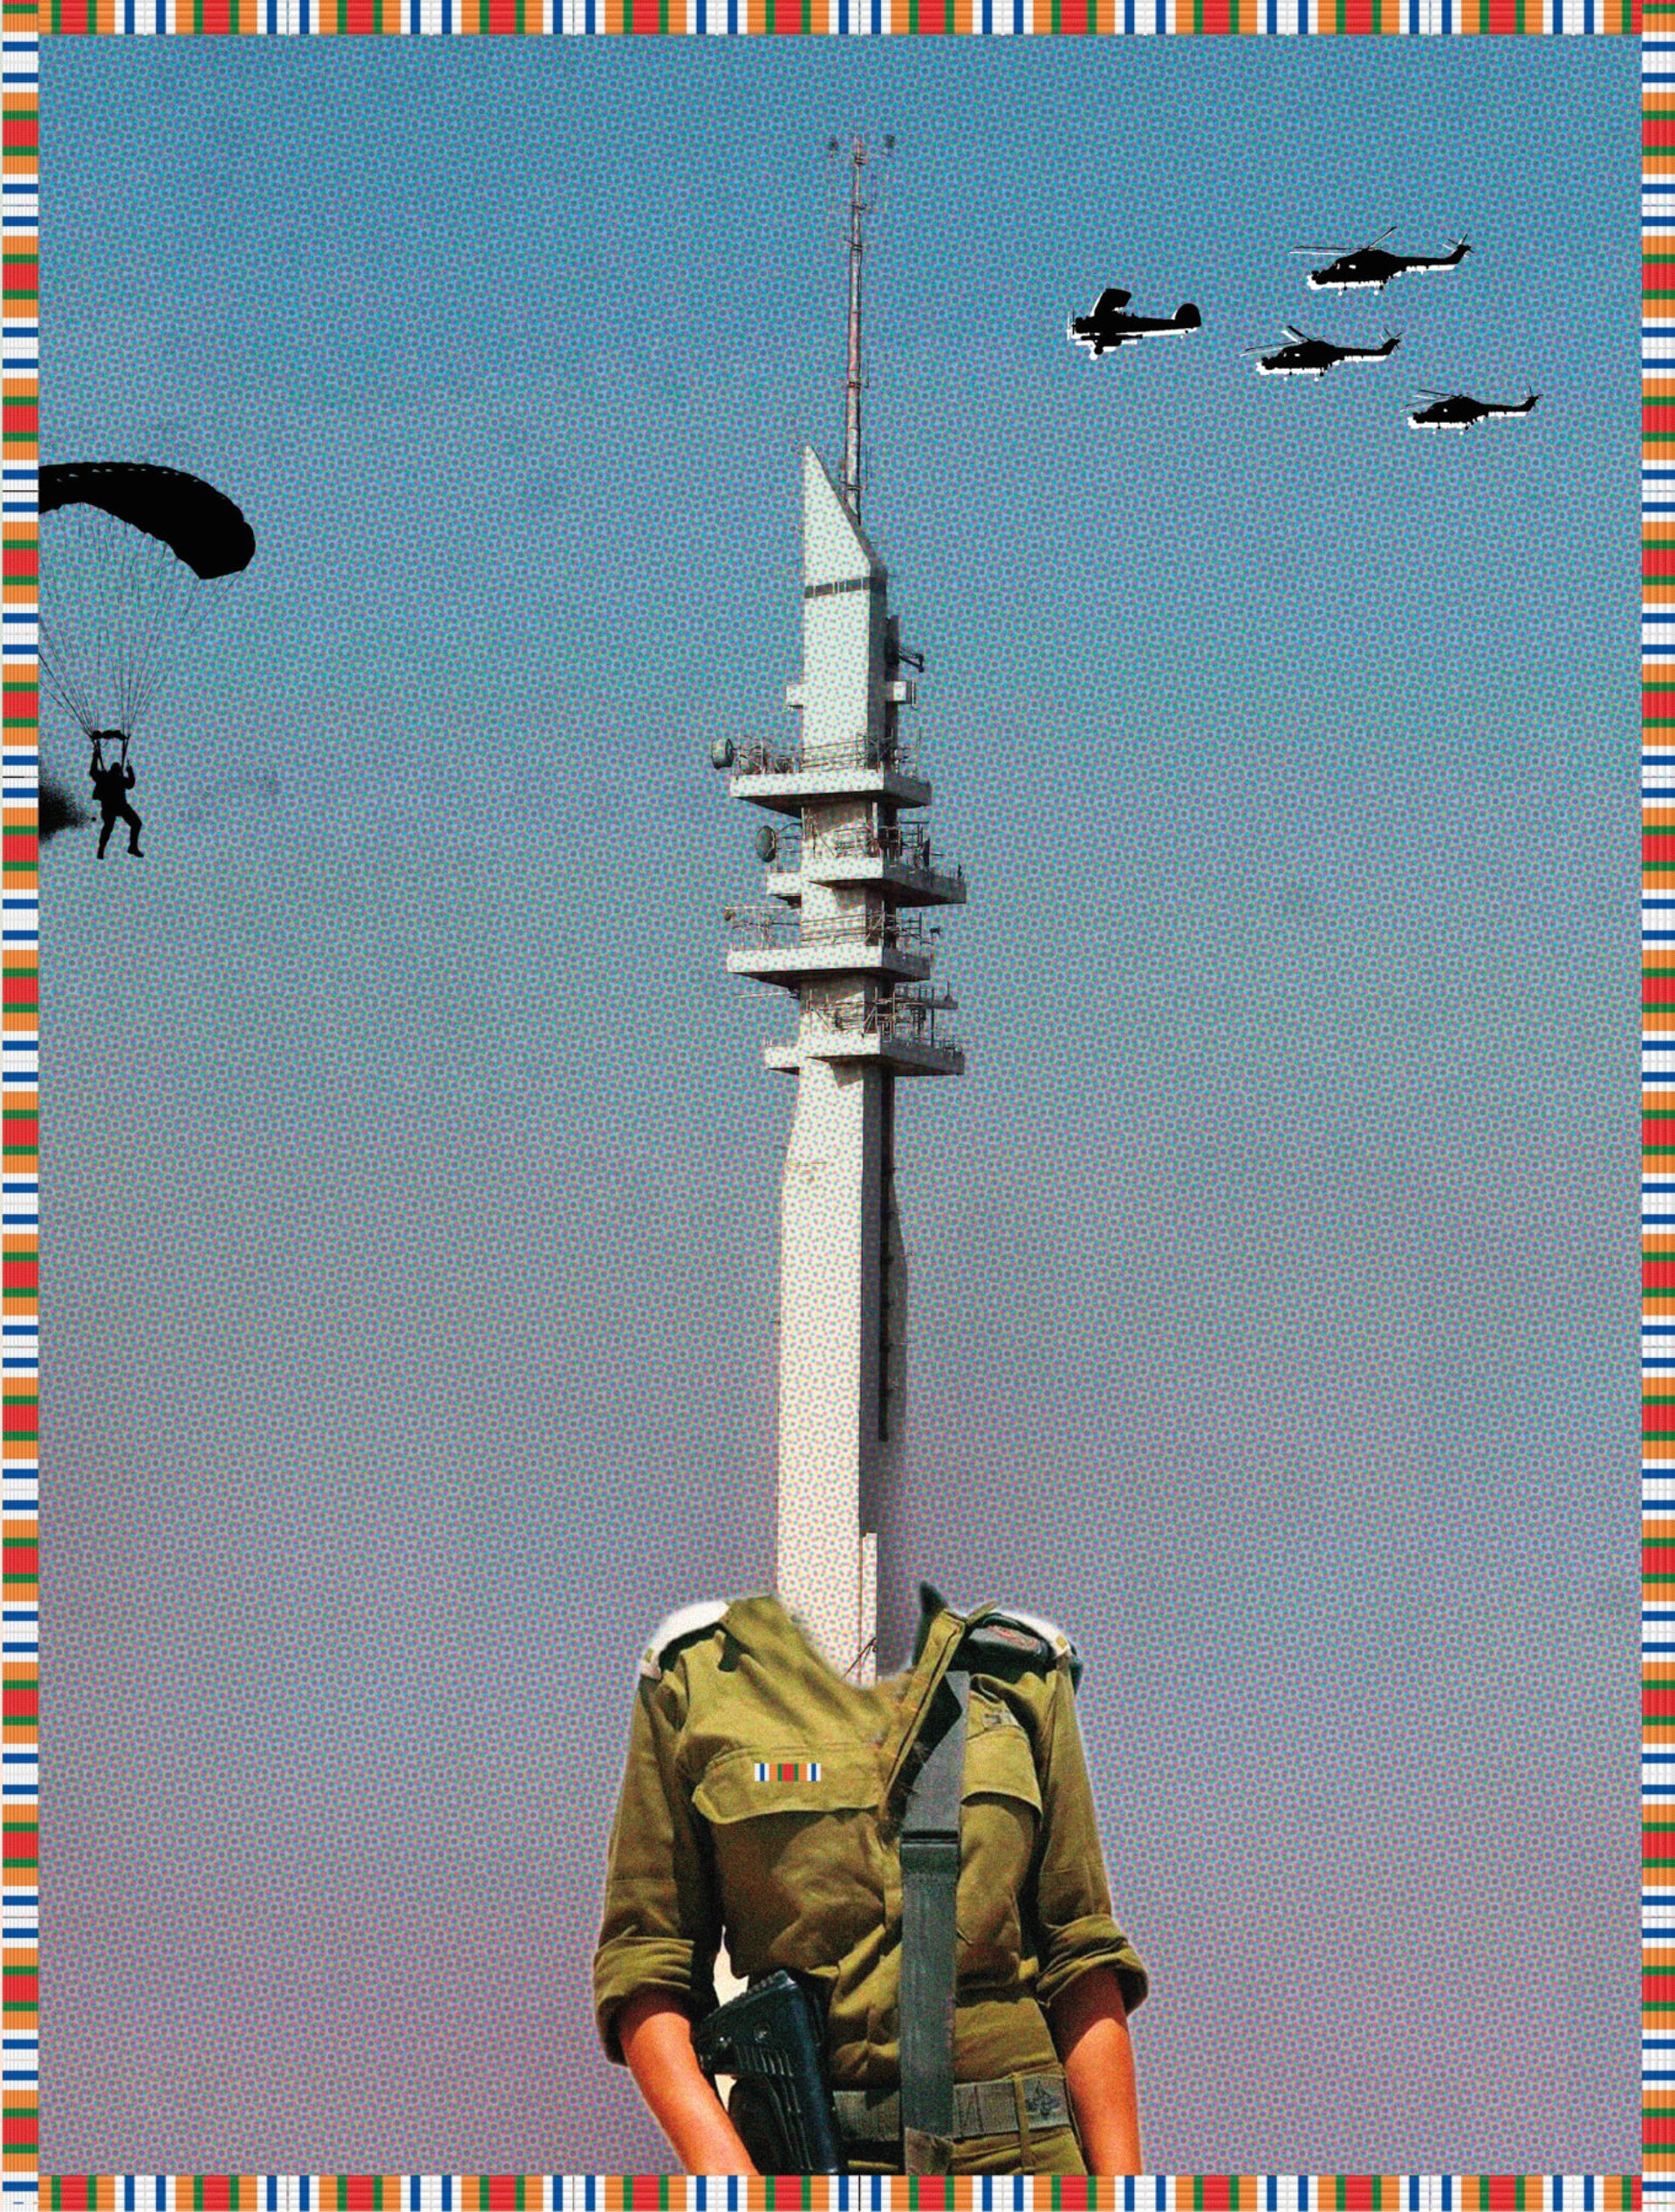 An illustration showing a female soldier with a tower for a head.